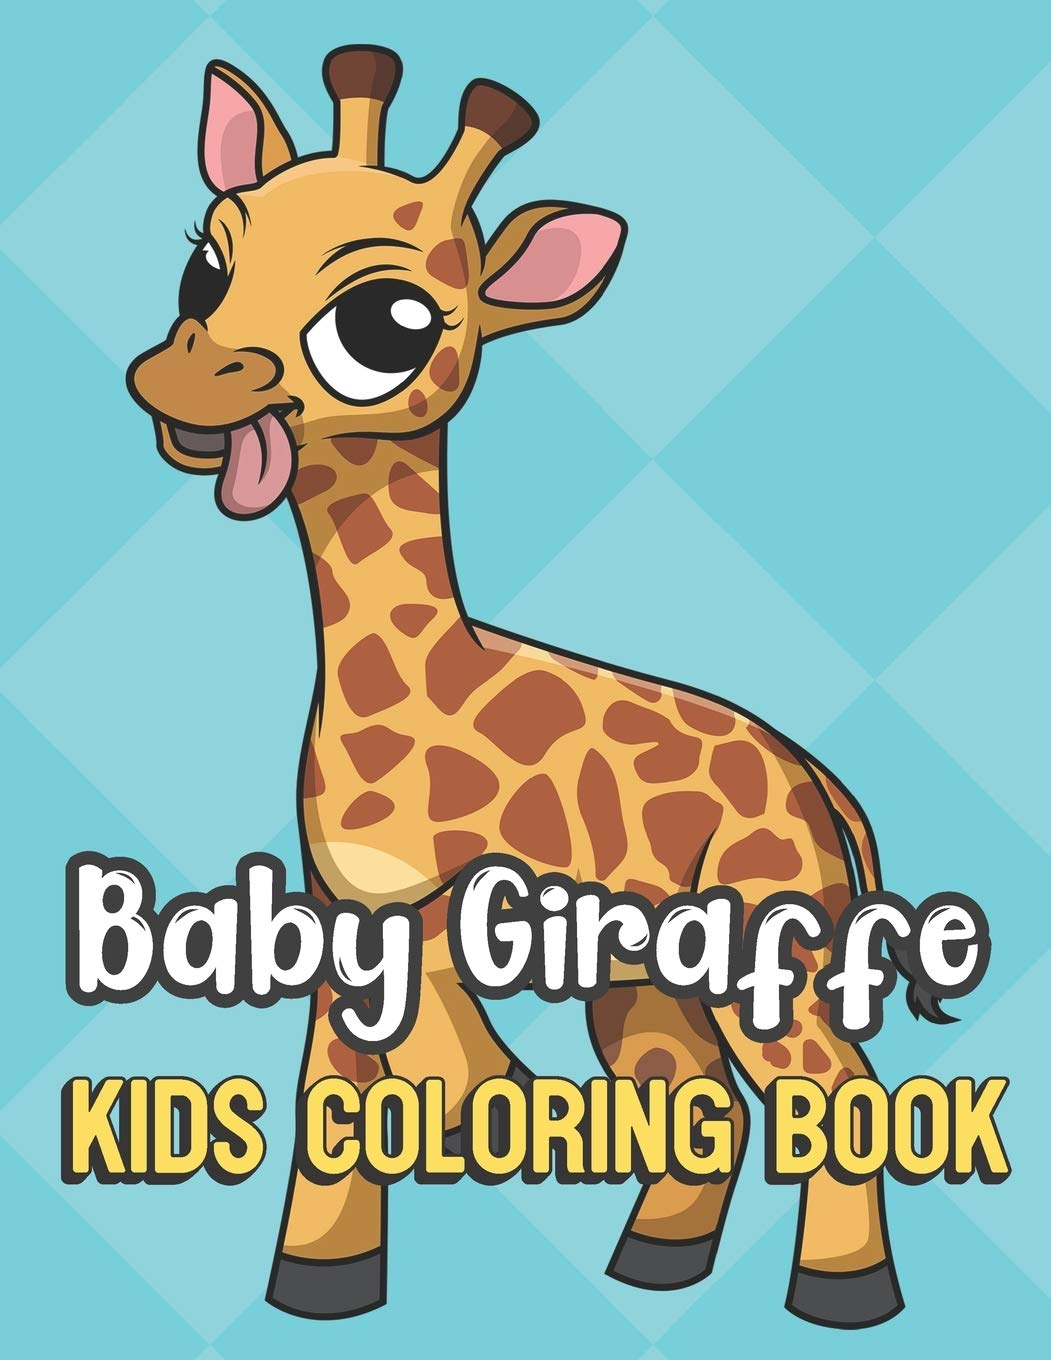 Baby Giraffe Kids Coloring Book Silly Giraffes Color Book For Children Of All Ages Teal Diamond Design With Black White Pages For Mindfulness And Relaxation Publishing Greetingpages 9781695415676 Amazon Com Books